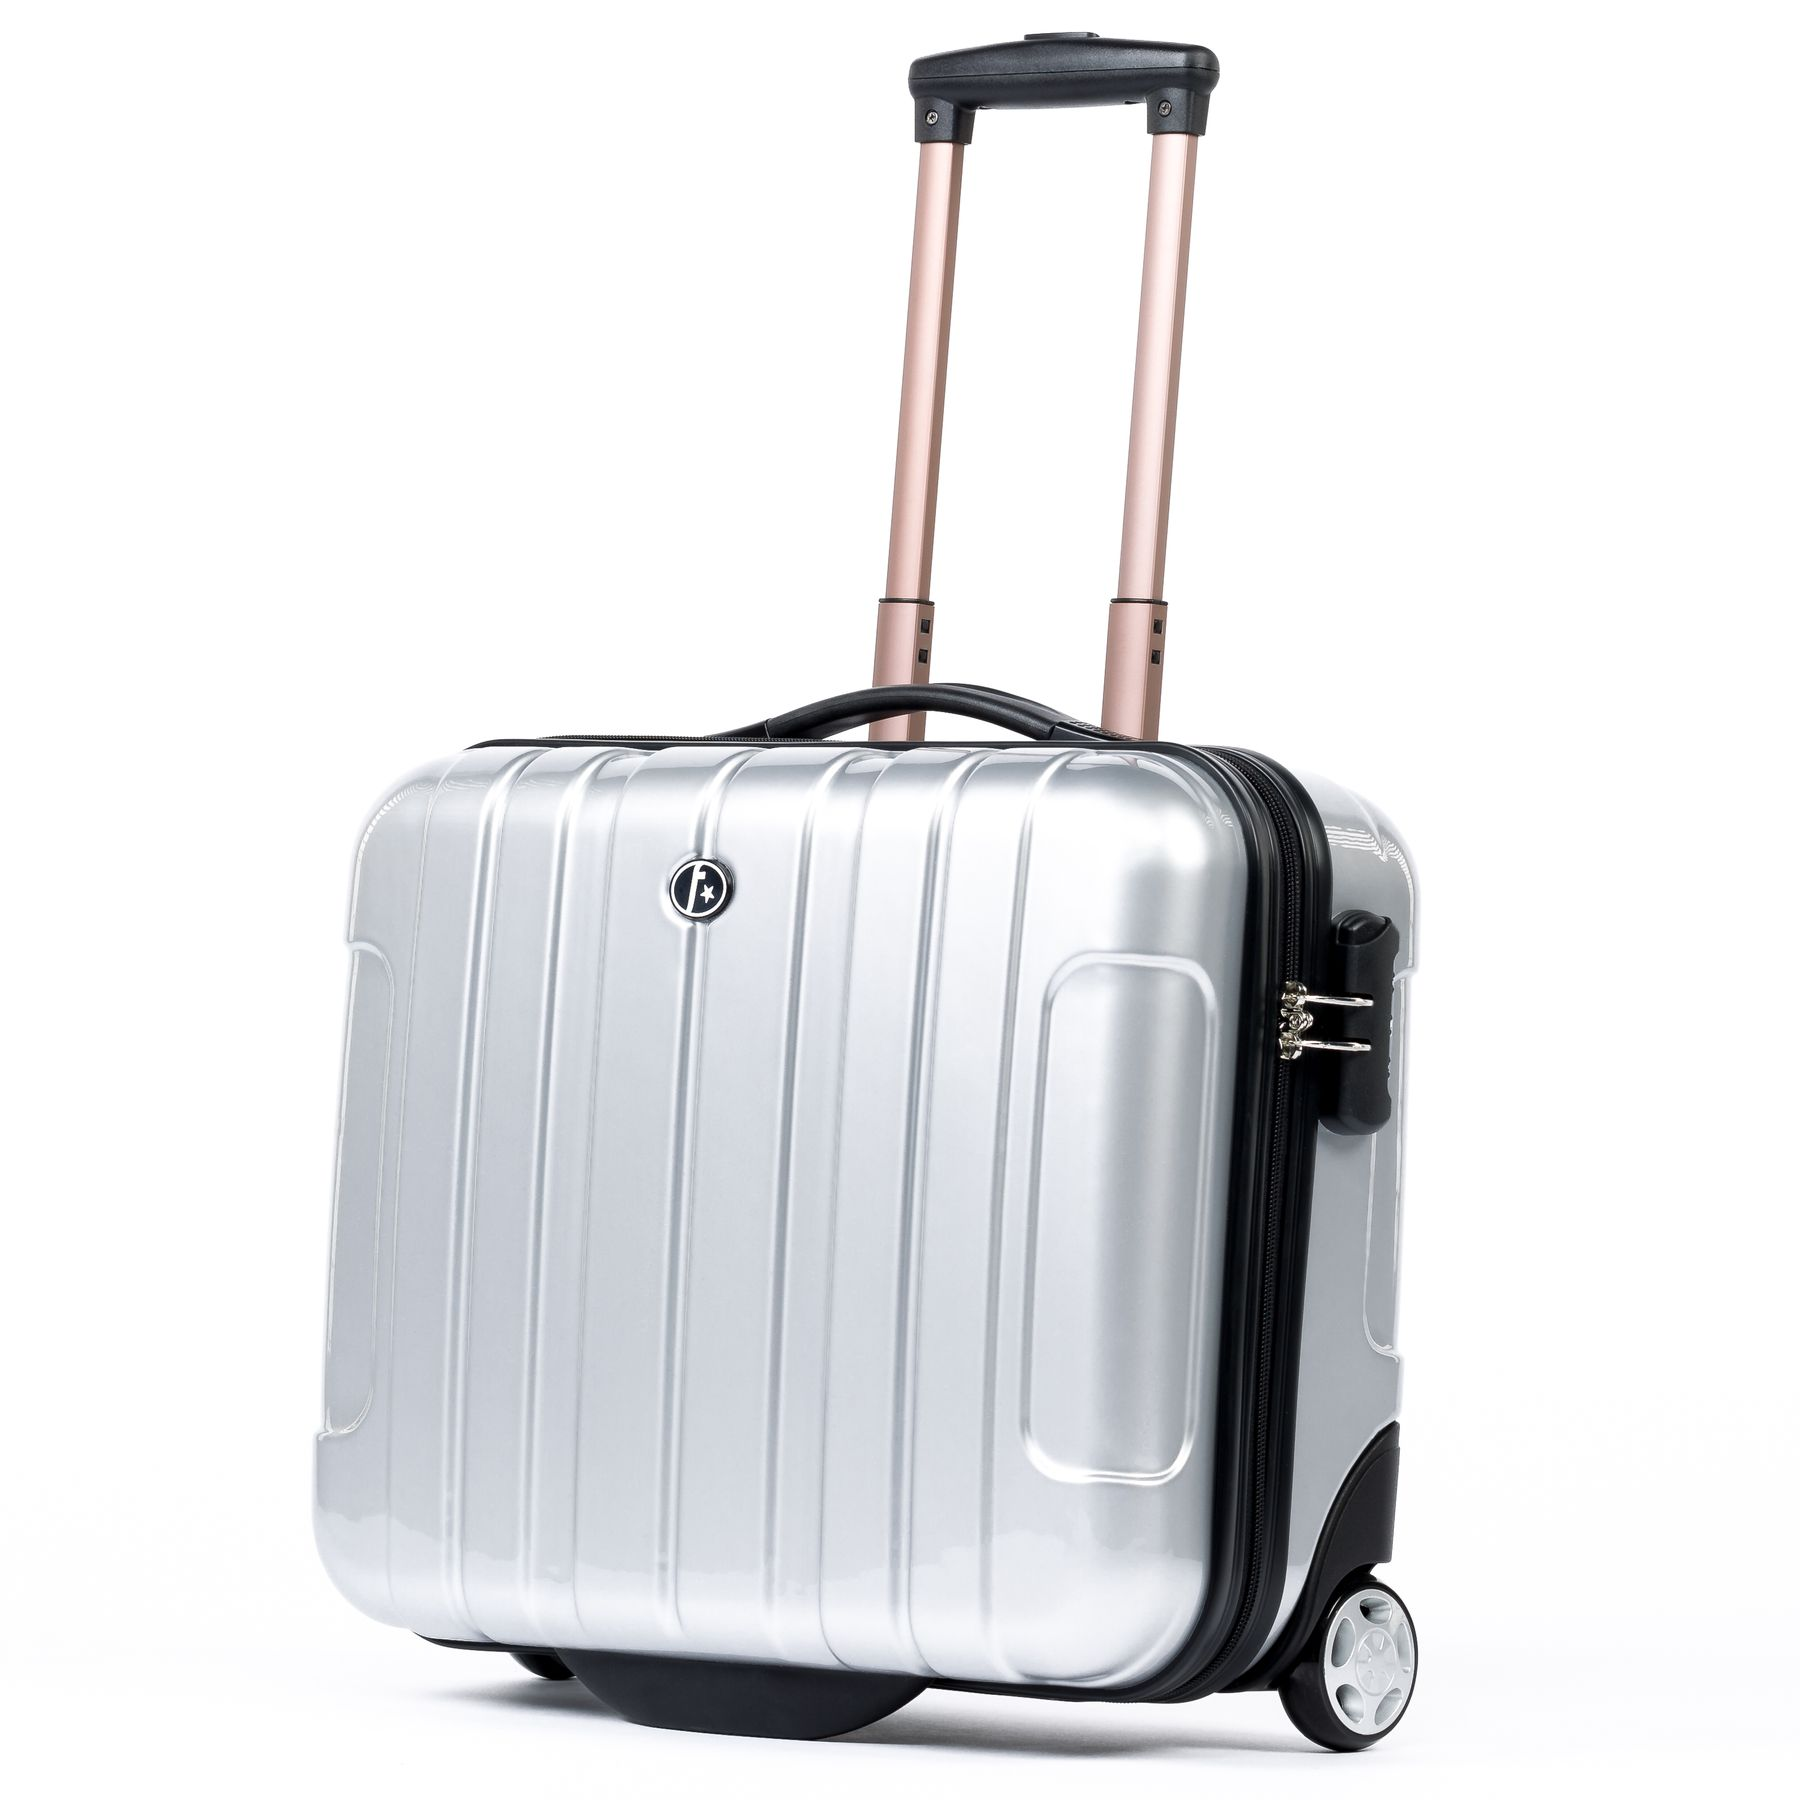 FERGÉ pilot s suitcase trolley Polycarbonate LUCA silver-shiny business case  laptop compartment carry-on hard-shell 2 wheels Business Carry-on Luggage be4b0819d7